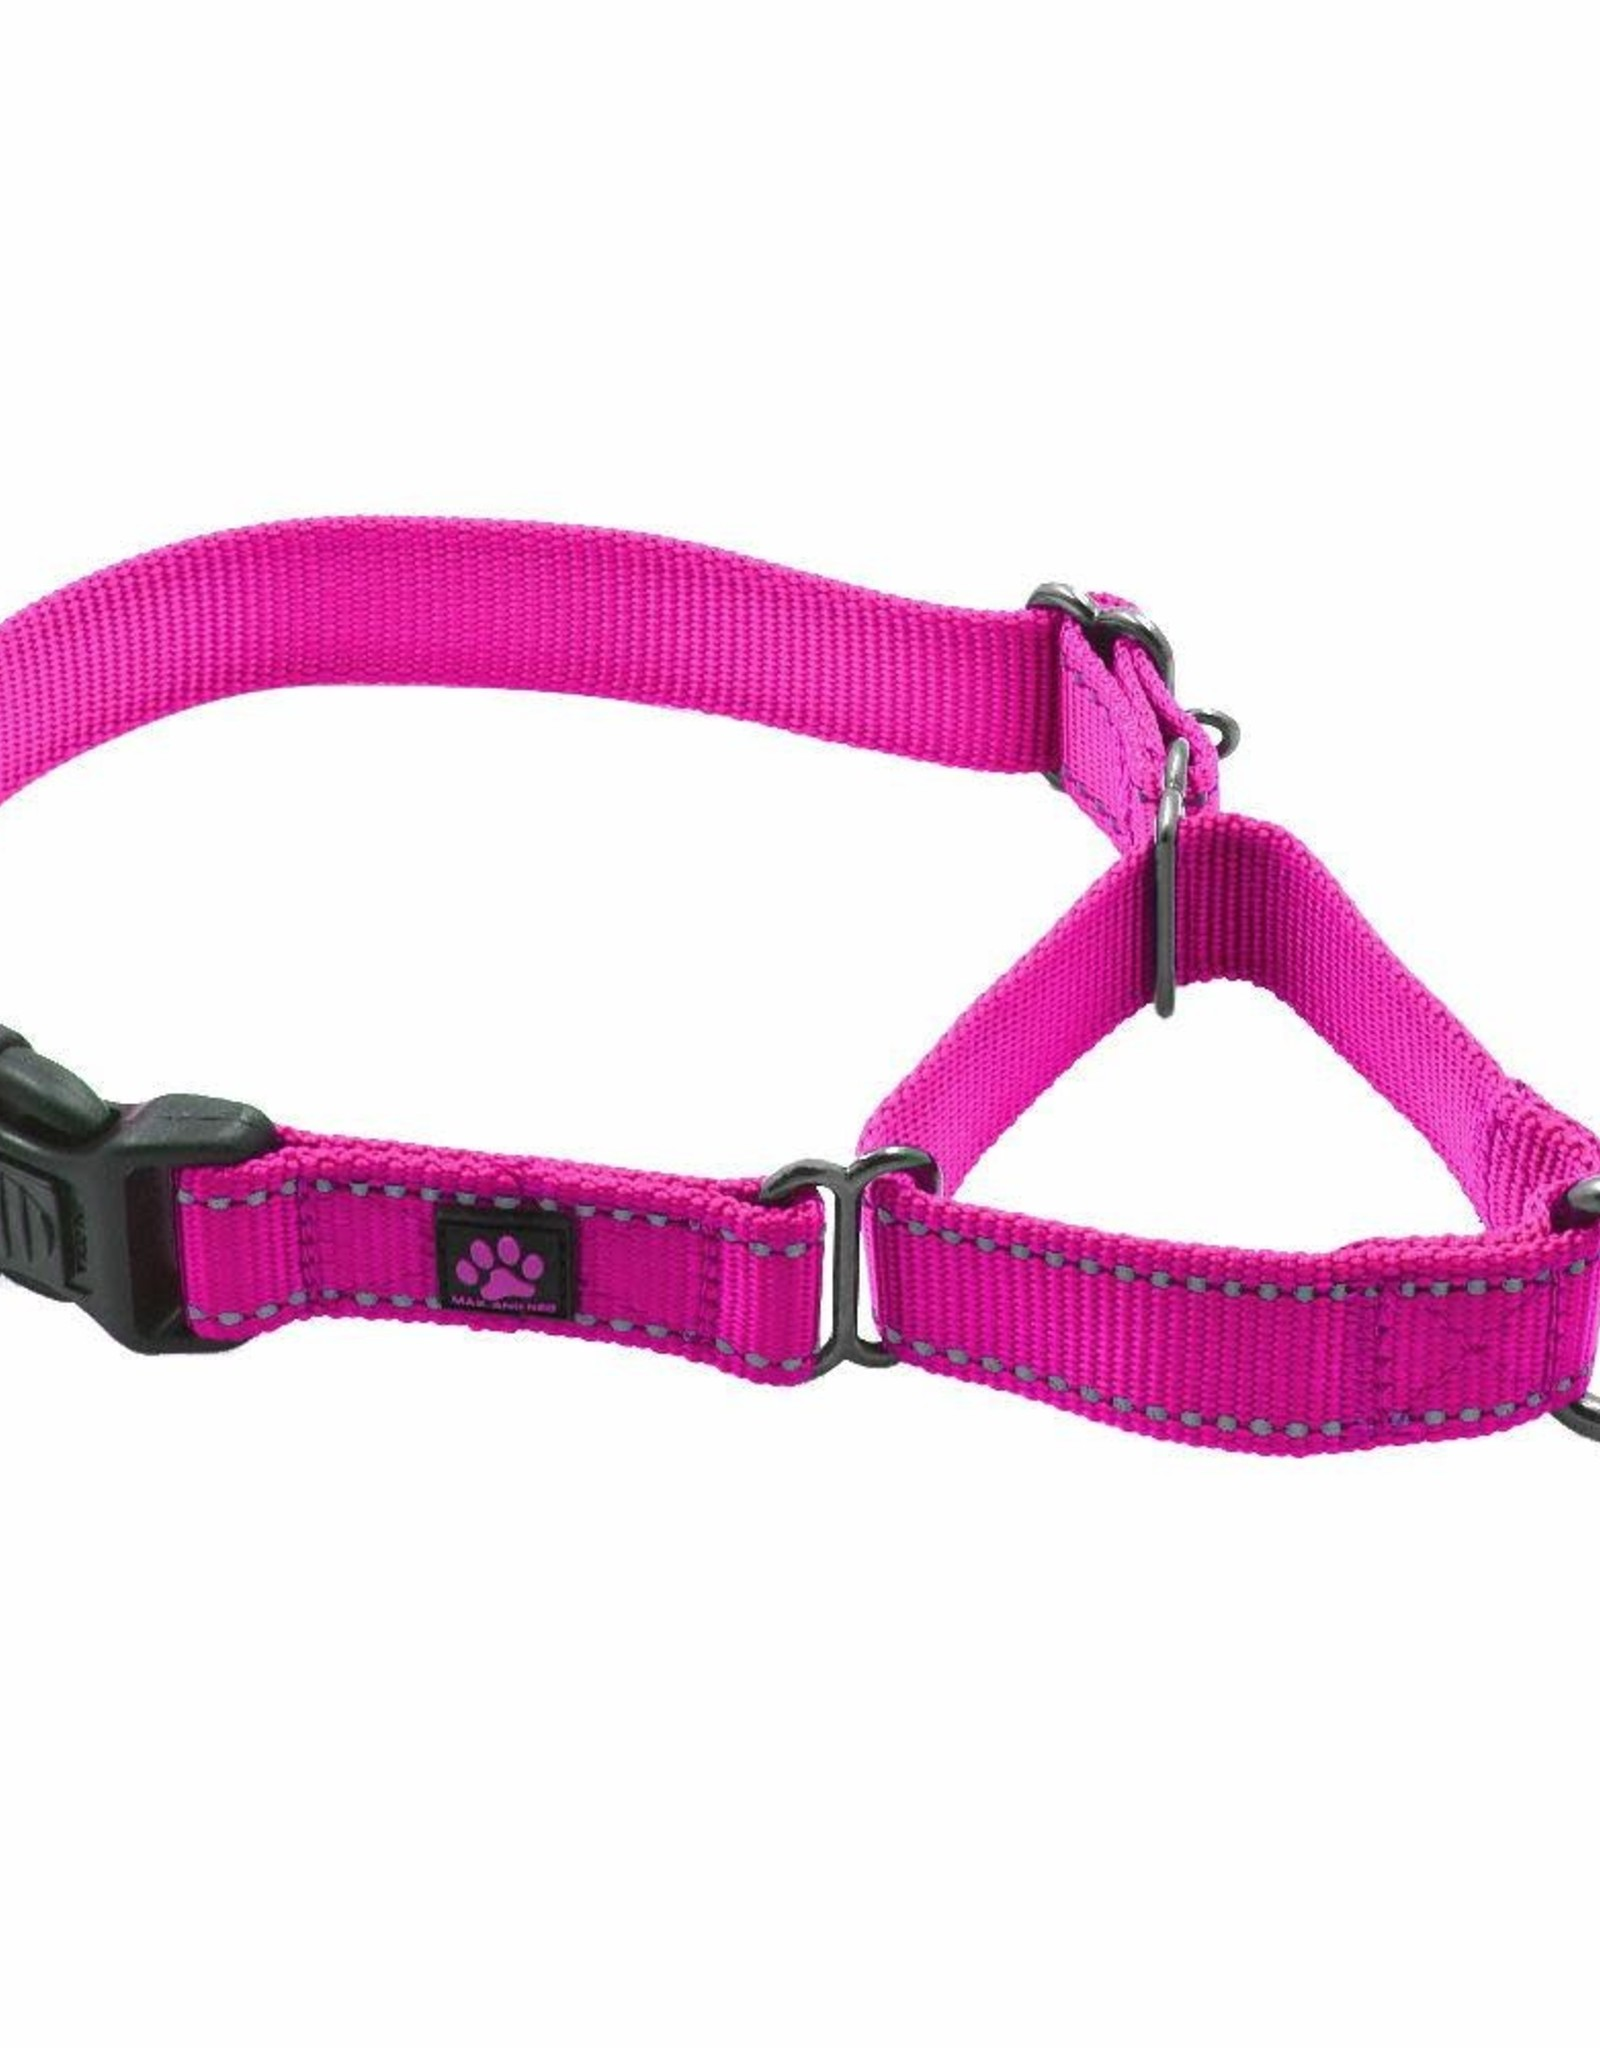 Max & Neo Max & Neo Collars - XS Pink Martingale